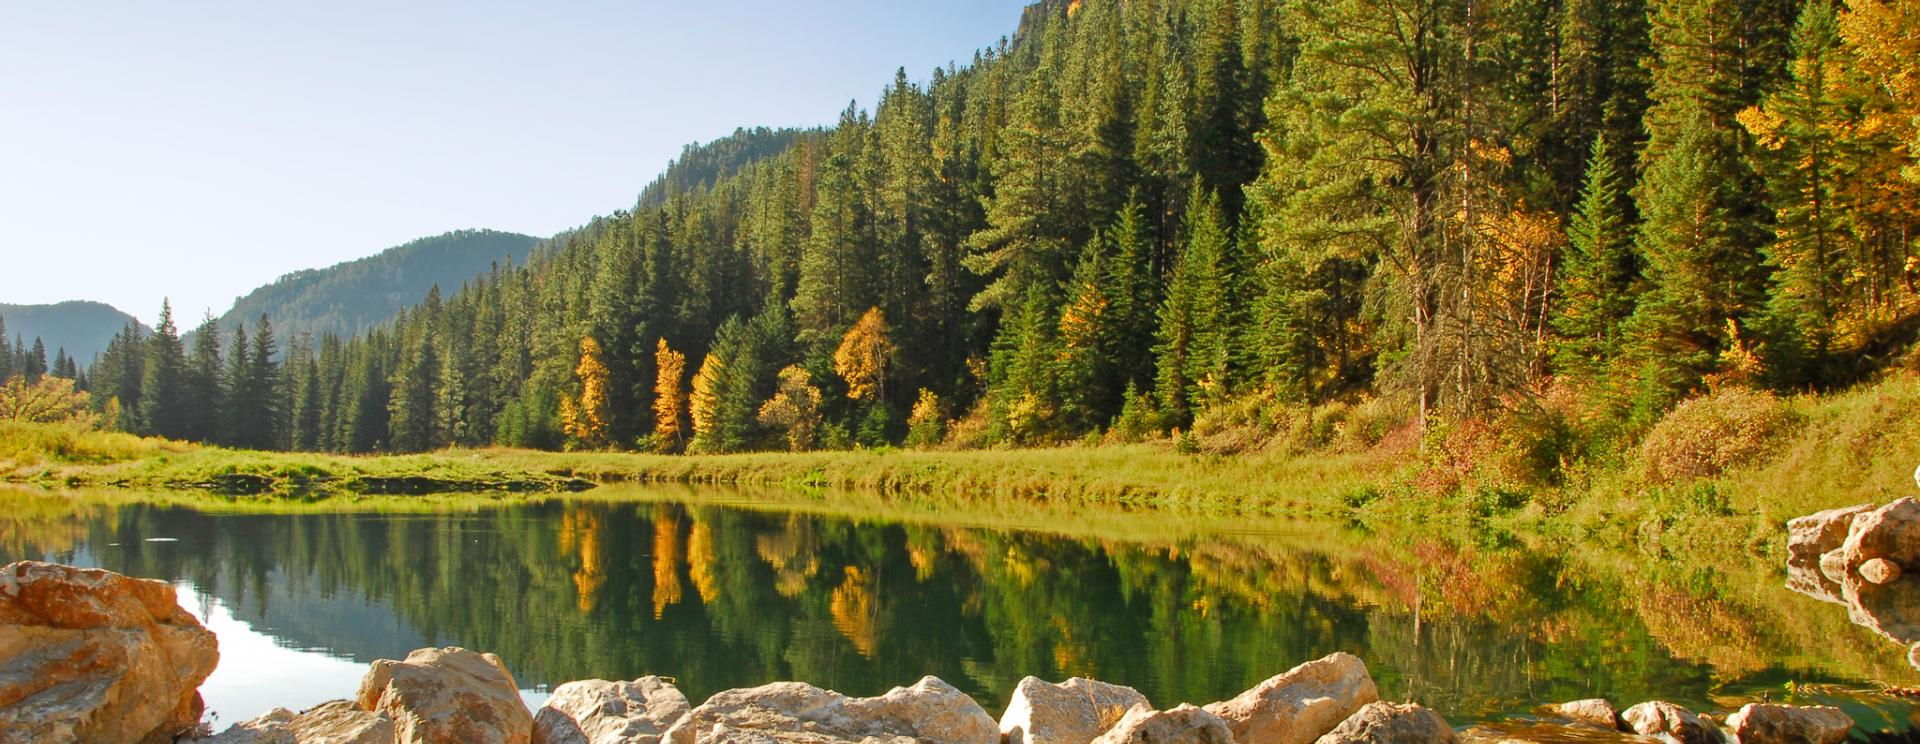 Spearfish Canyon Scenic Byway | Black Hills & Badlands